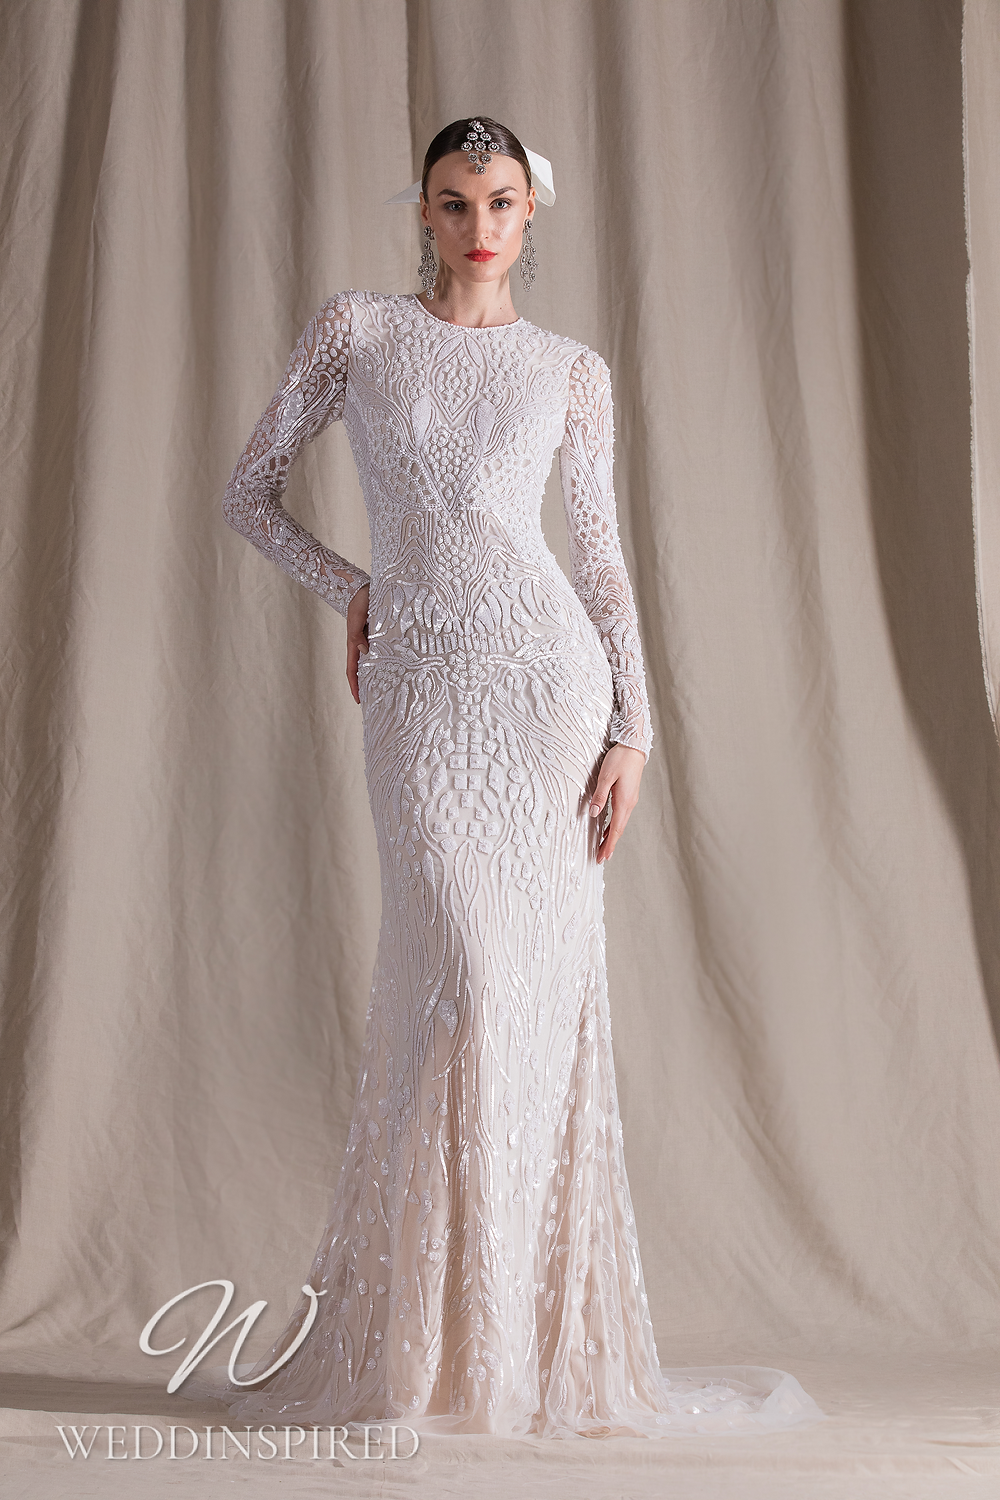 A Naeem Khan 2022 lace and tulle sheath wedding dress with long sleeves